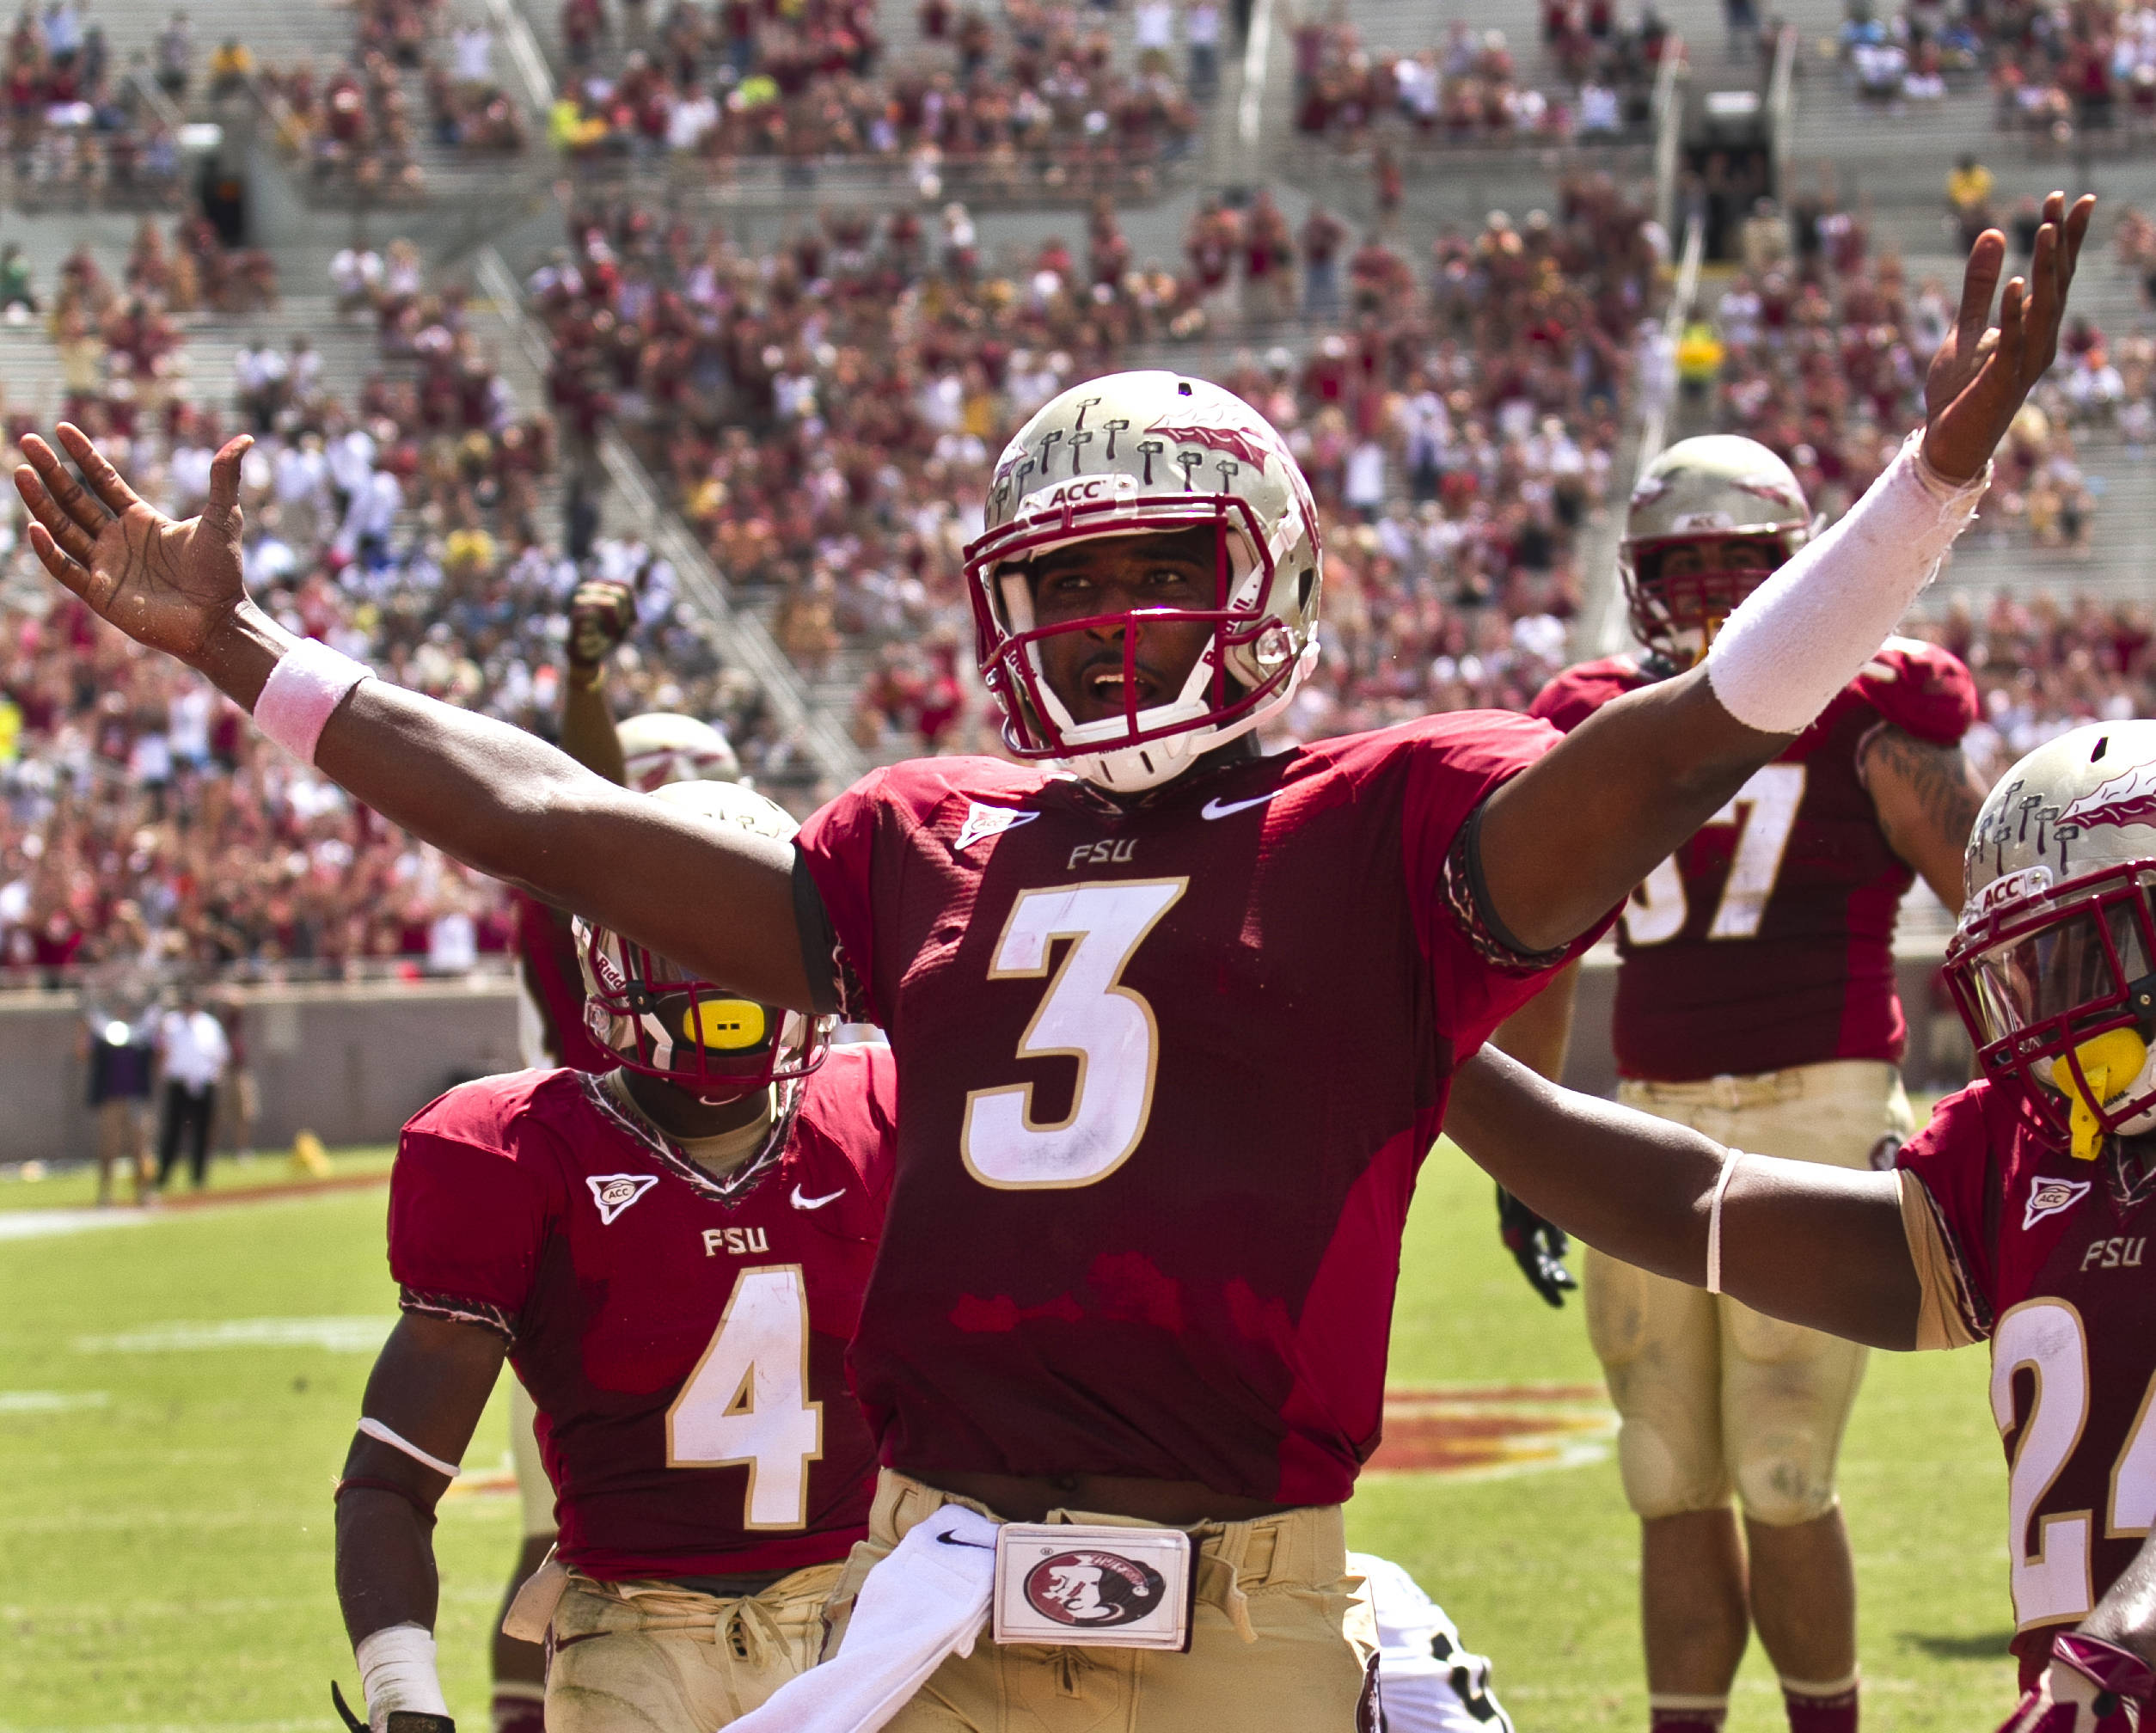 EJ Manuel (3) celebrating his touchdown, FSU vs Wake Forest, 9/15/12 (Photo by Steve Musco)